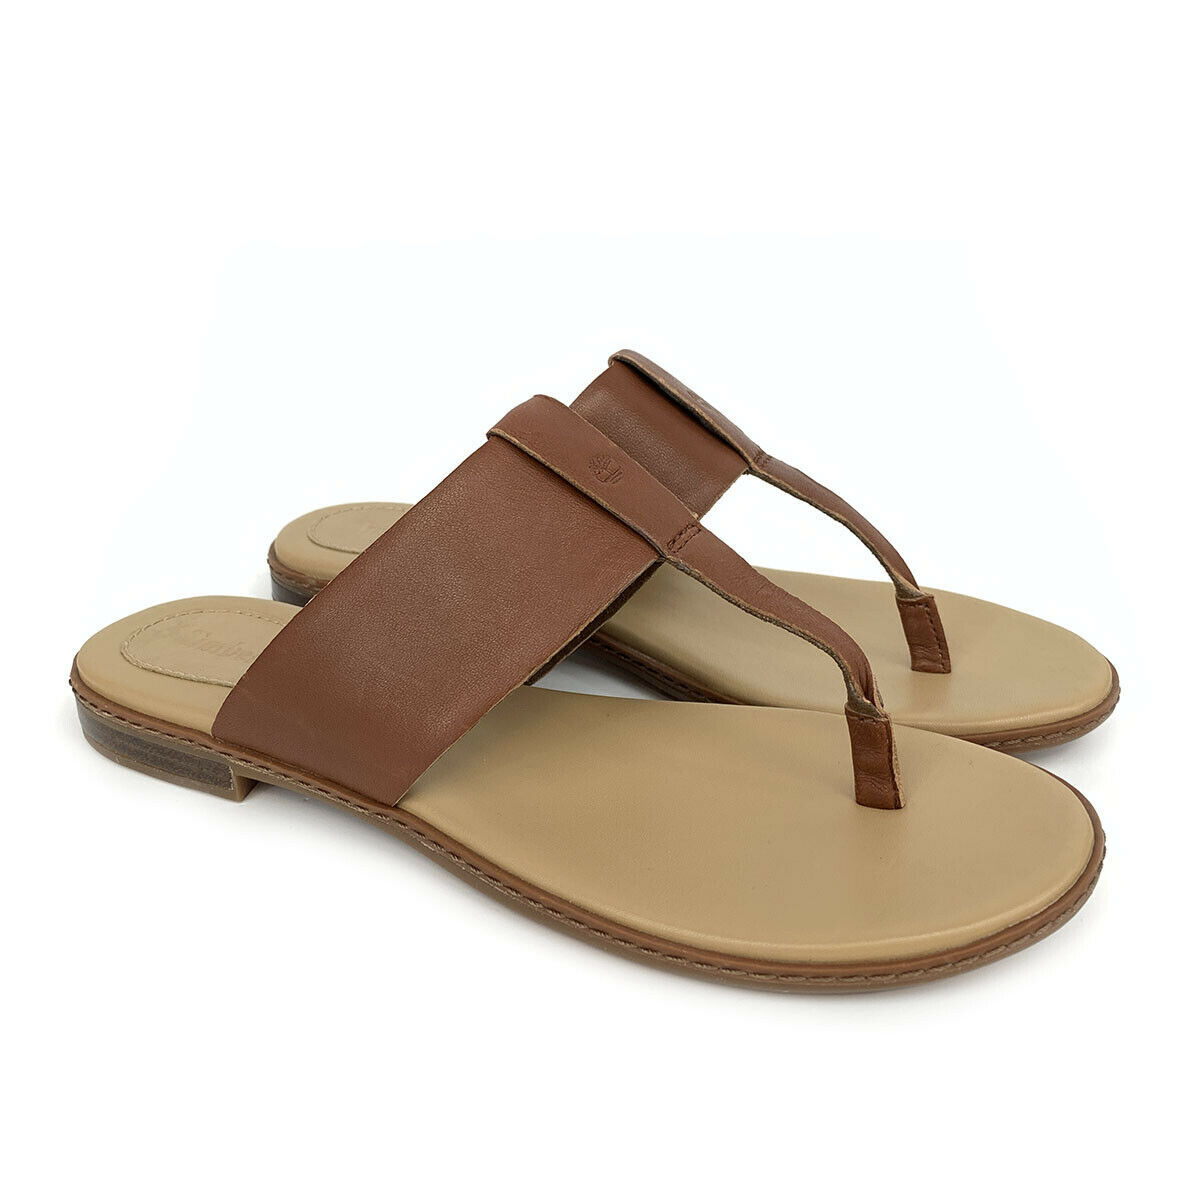 Primary image for Timberland Women's Cherrybrook Brown Leather Thong Sandals A1OZ5